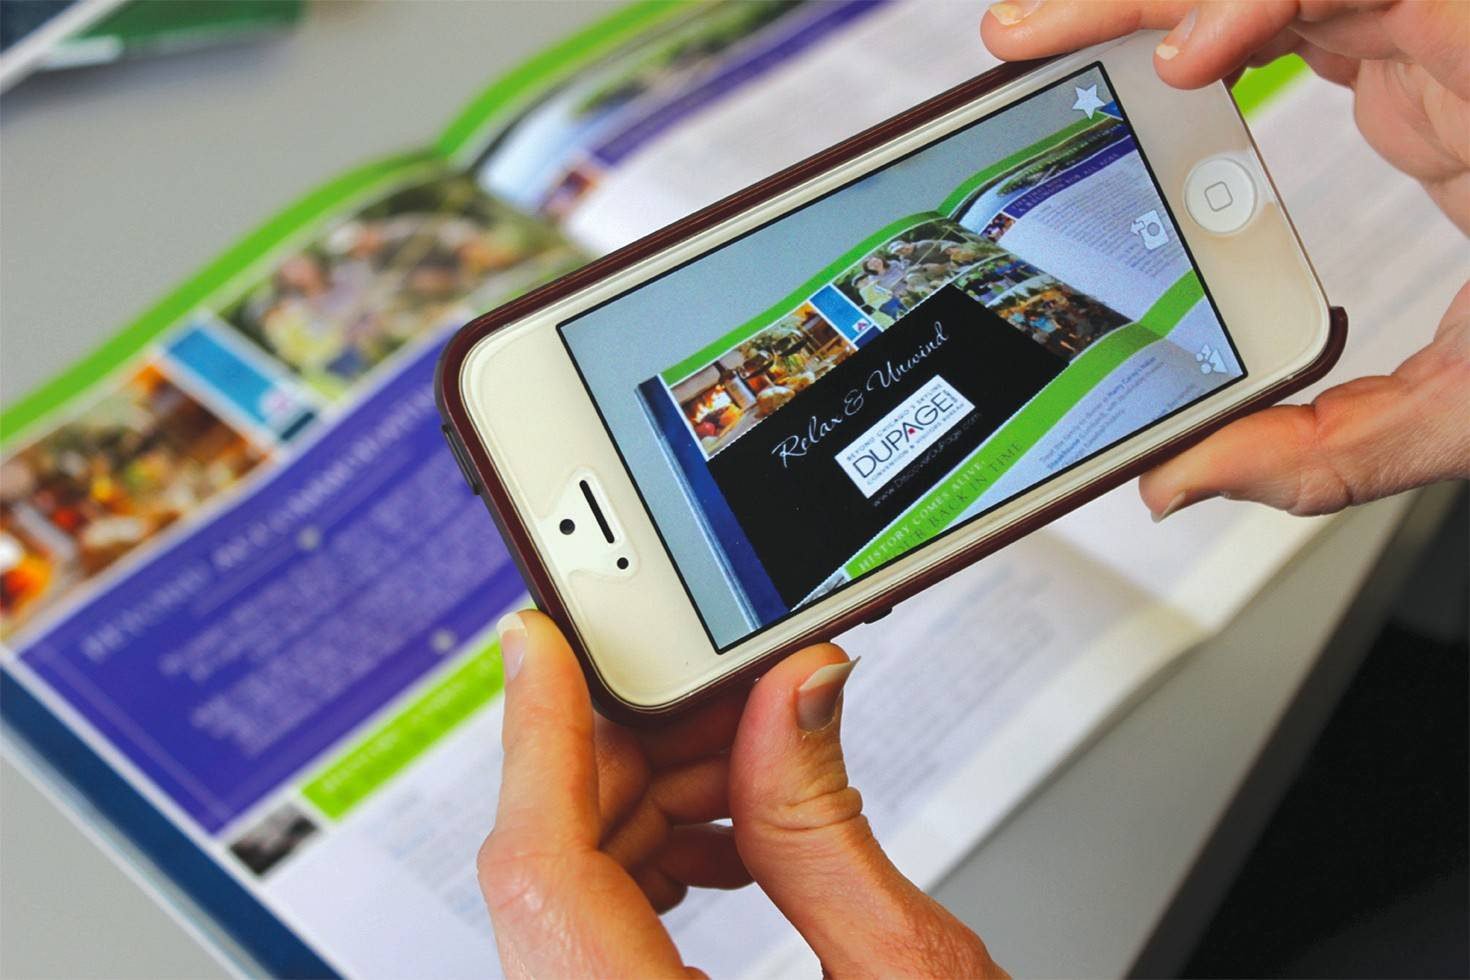 This shows a video playing on a smartphone while the printed guide is on the desk. The video is playing over the purple area on the printed guide, while the other images remain idle. This is the augmented reality portion of the app.